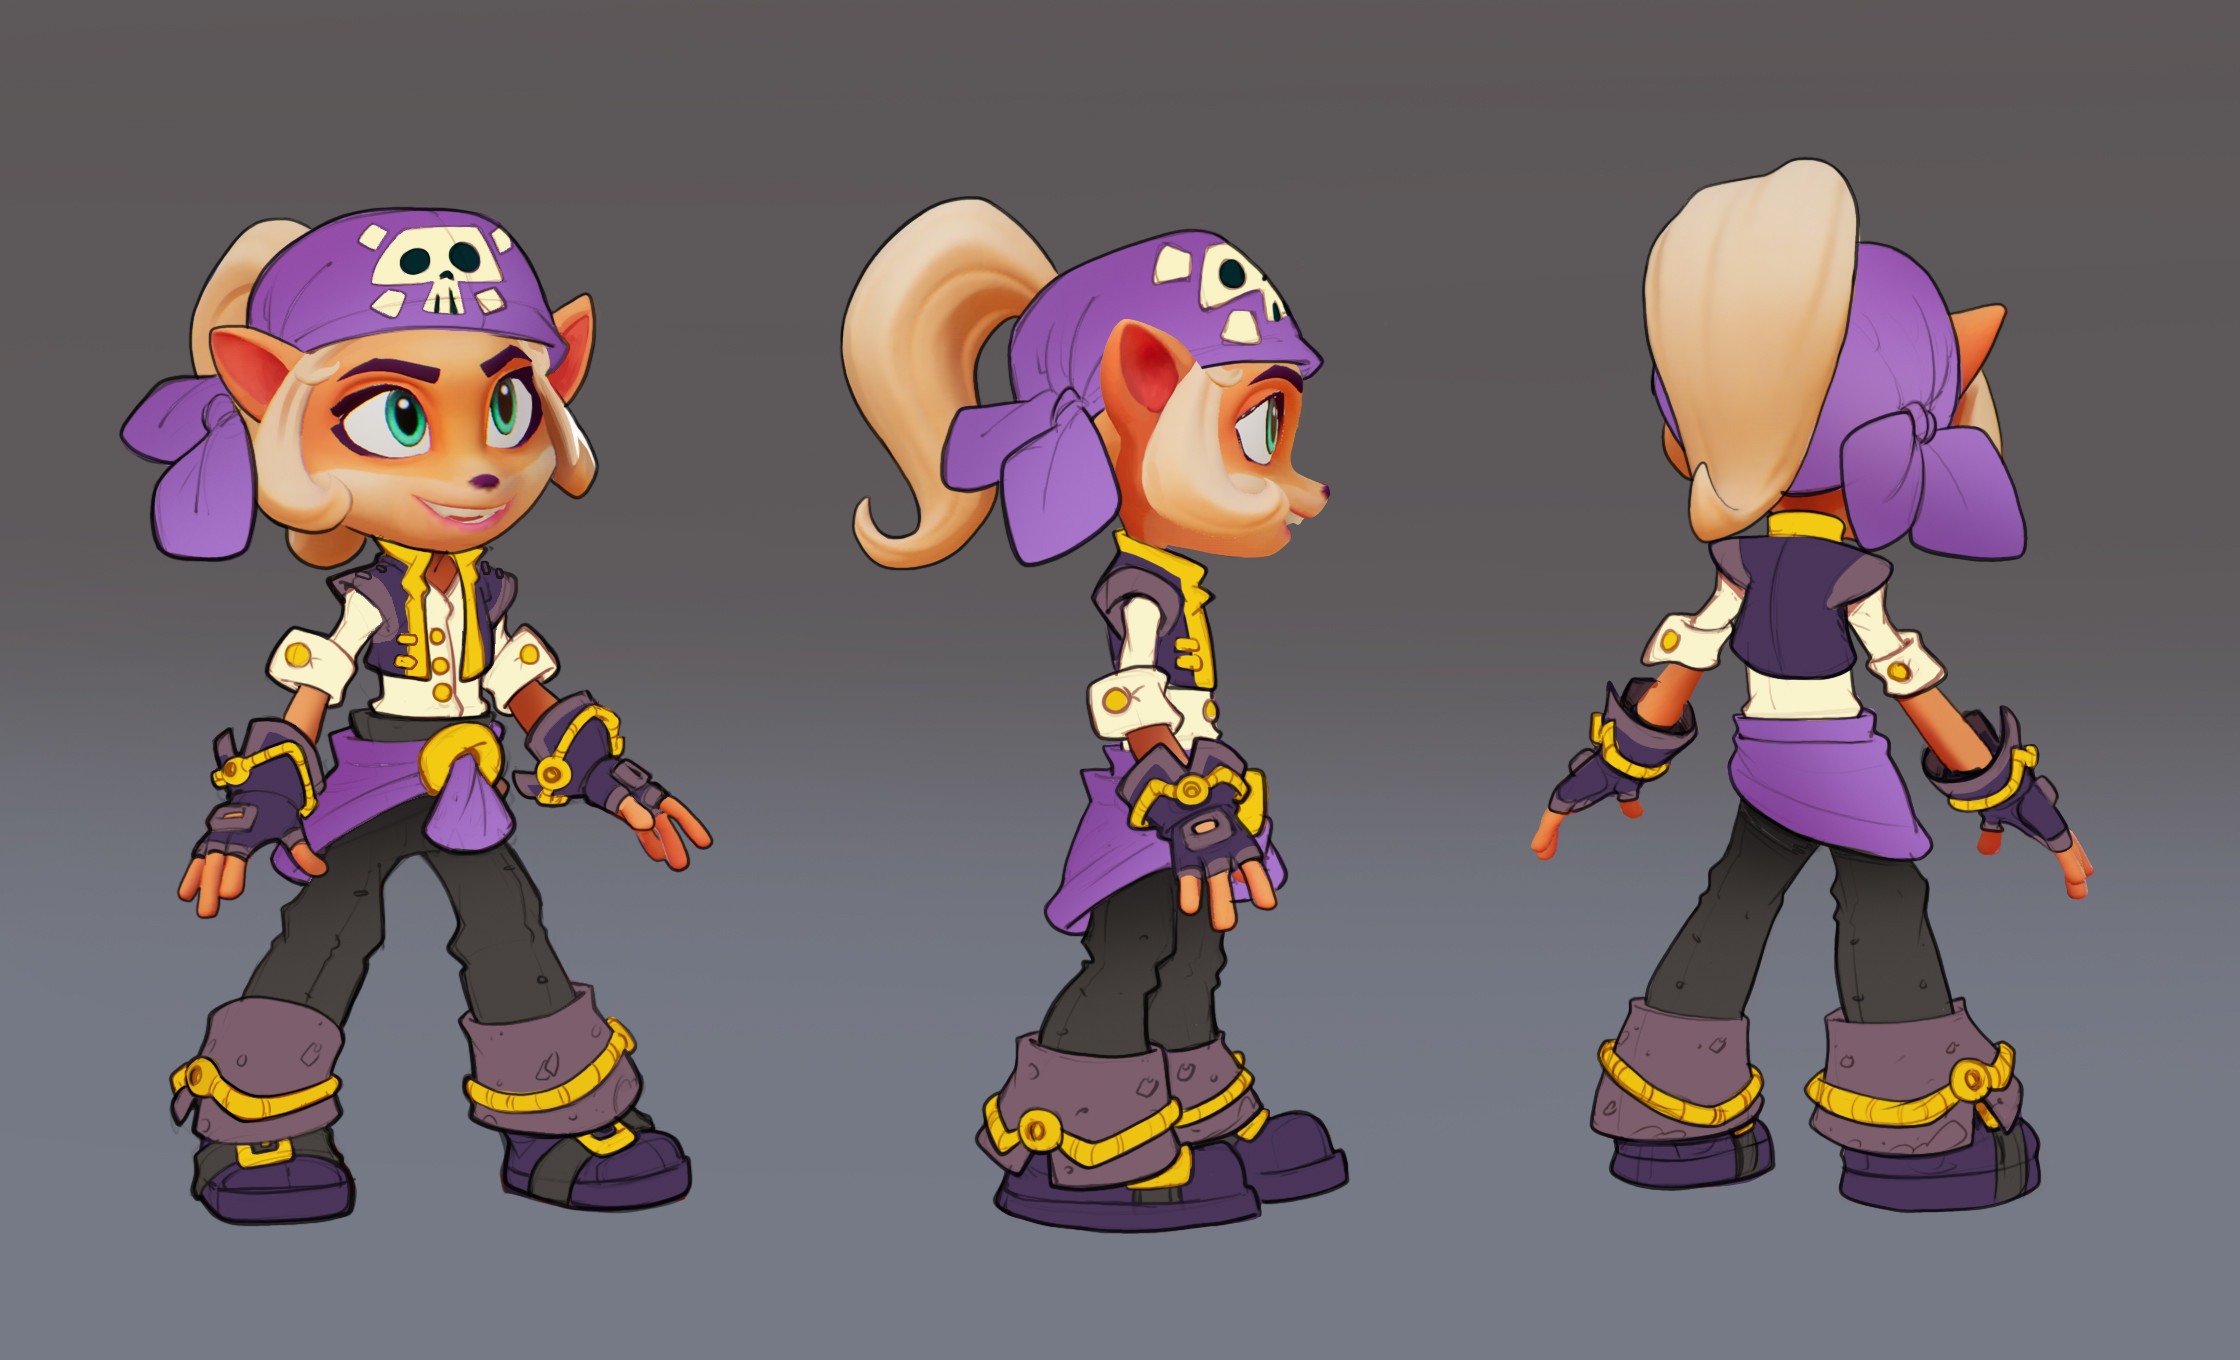 Final Coco Pirate Skin Concept: Minimal rendering requested due to time constraints.